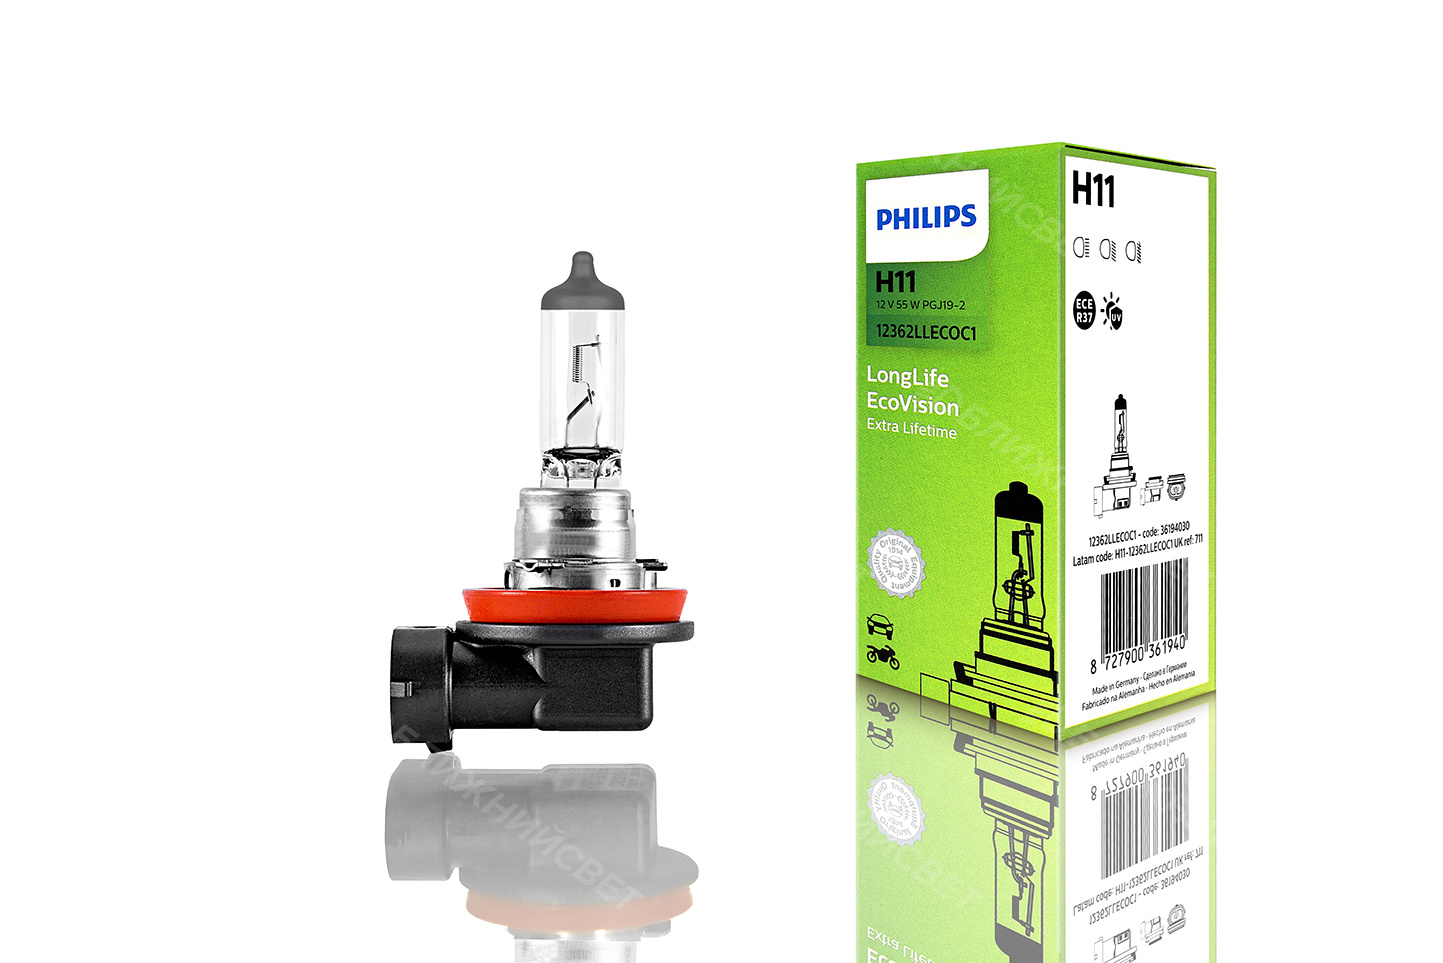 Галогеновая лампа для автомобиля PHILIPS H11 ORIGINAL (12V, 55W) артикул 12362LLECOC1